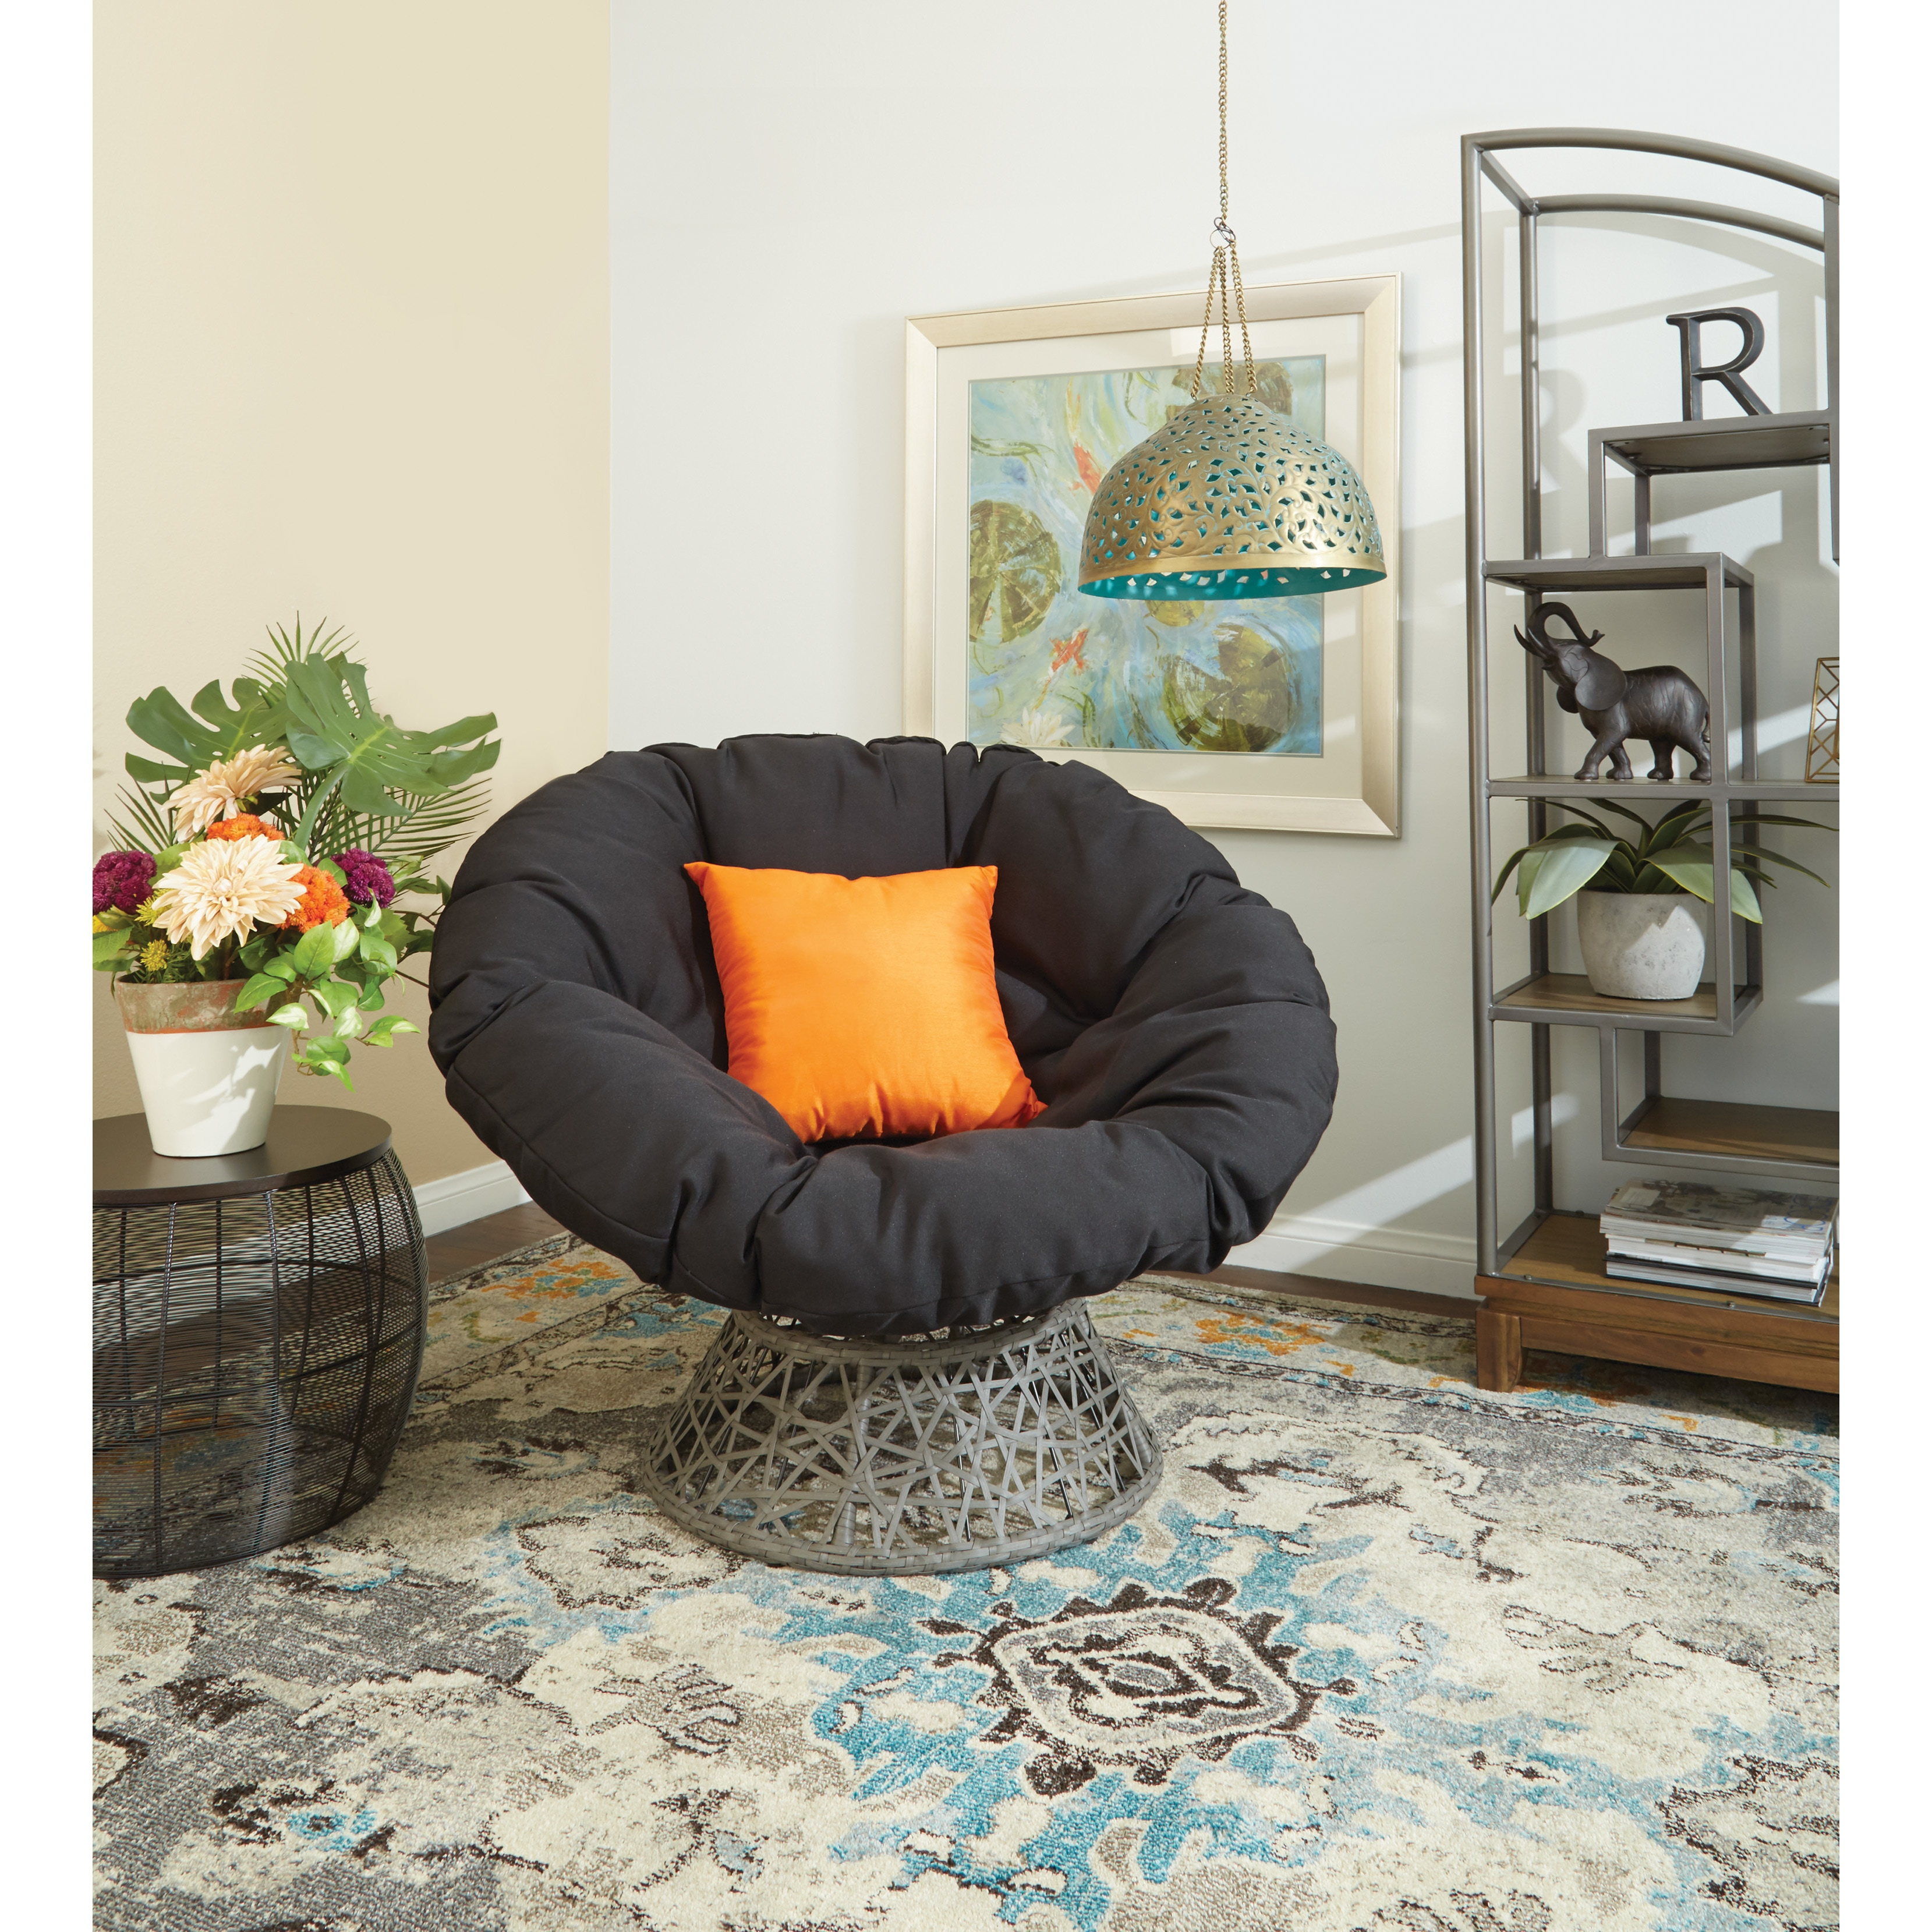 Bon BEST Papasan Padded Lounge Chair With Woven Wicker Frame For Living Room  Bedroom